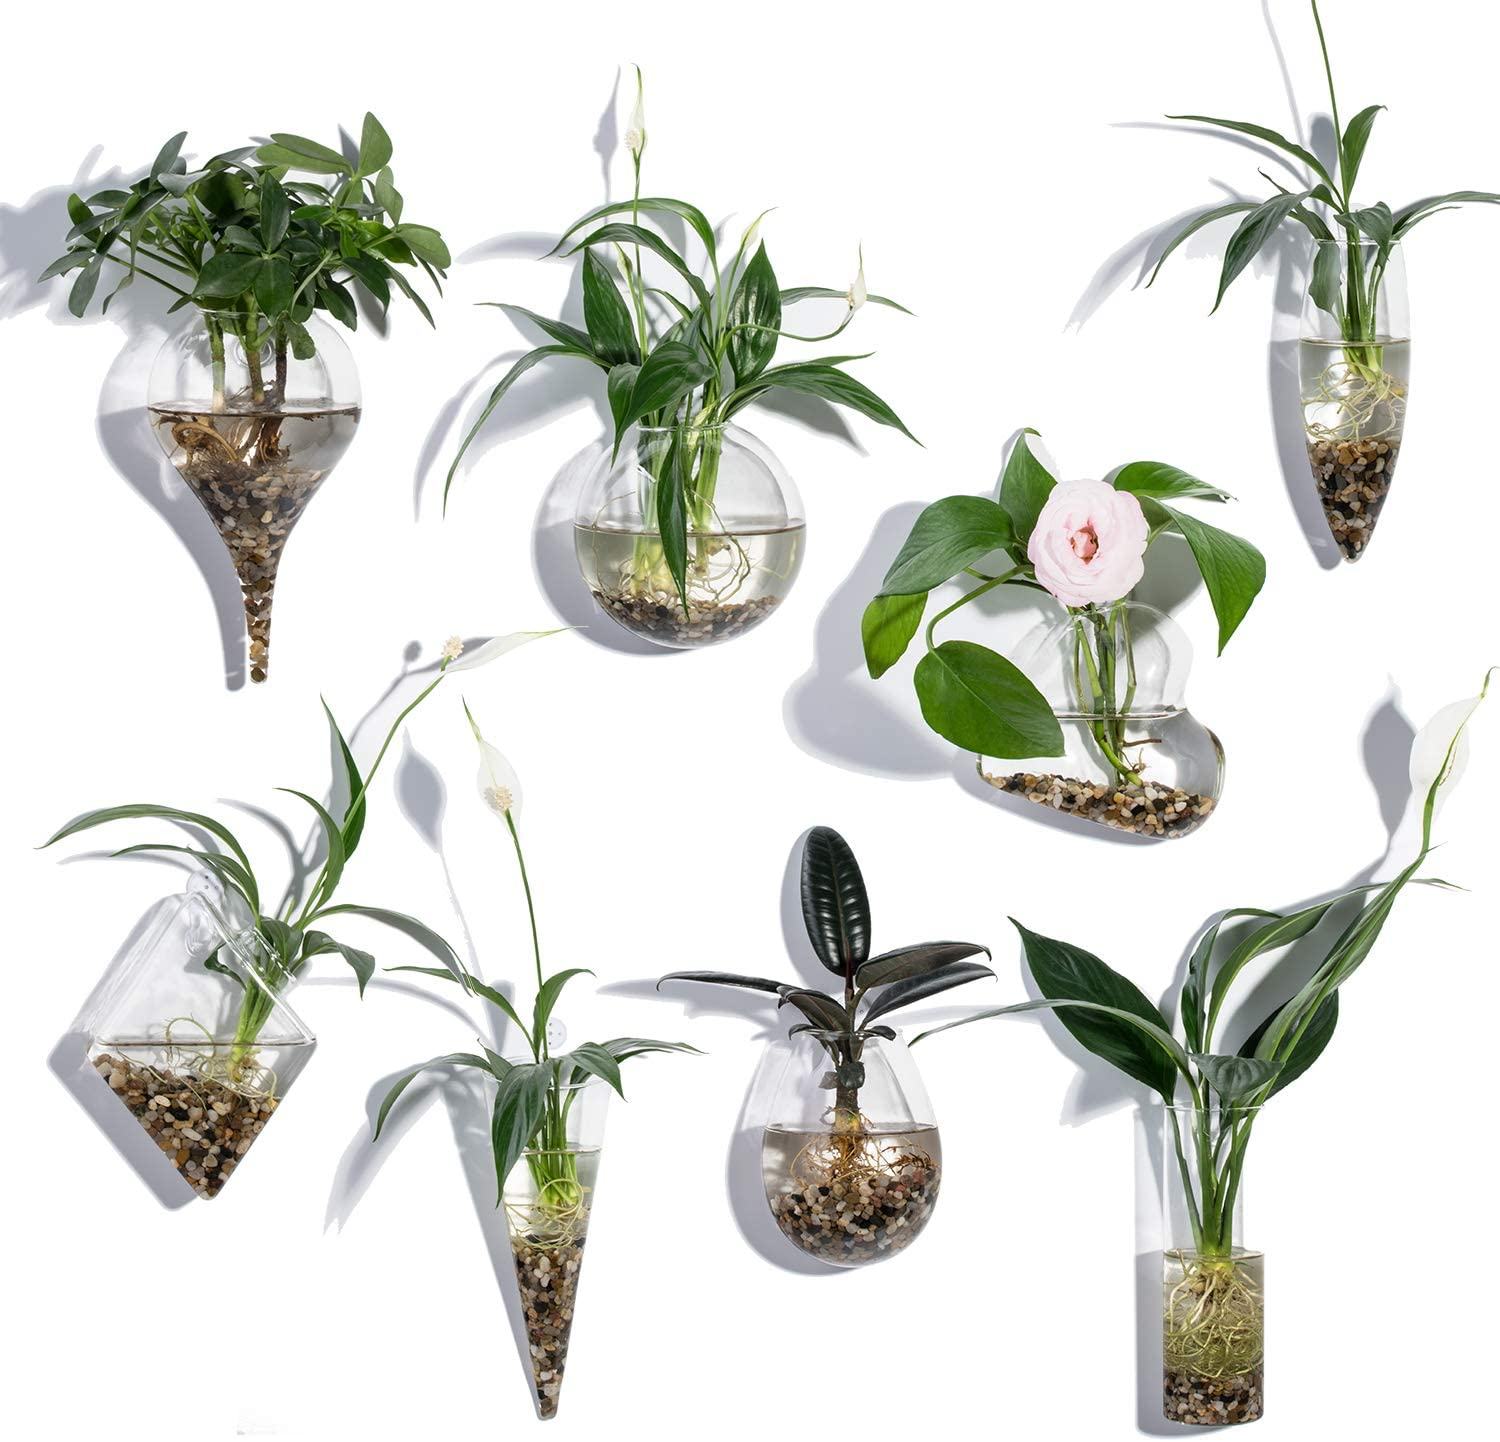 Wall Hanging Glass Terrariums Planter Glass Flower Vase for Hydroponics Plants, Home Office Living Room Decor,